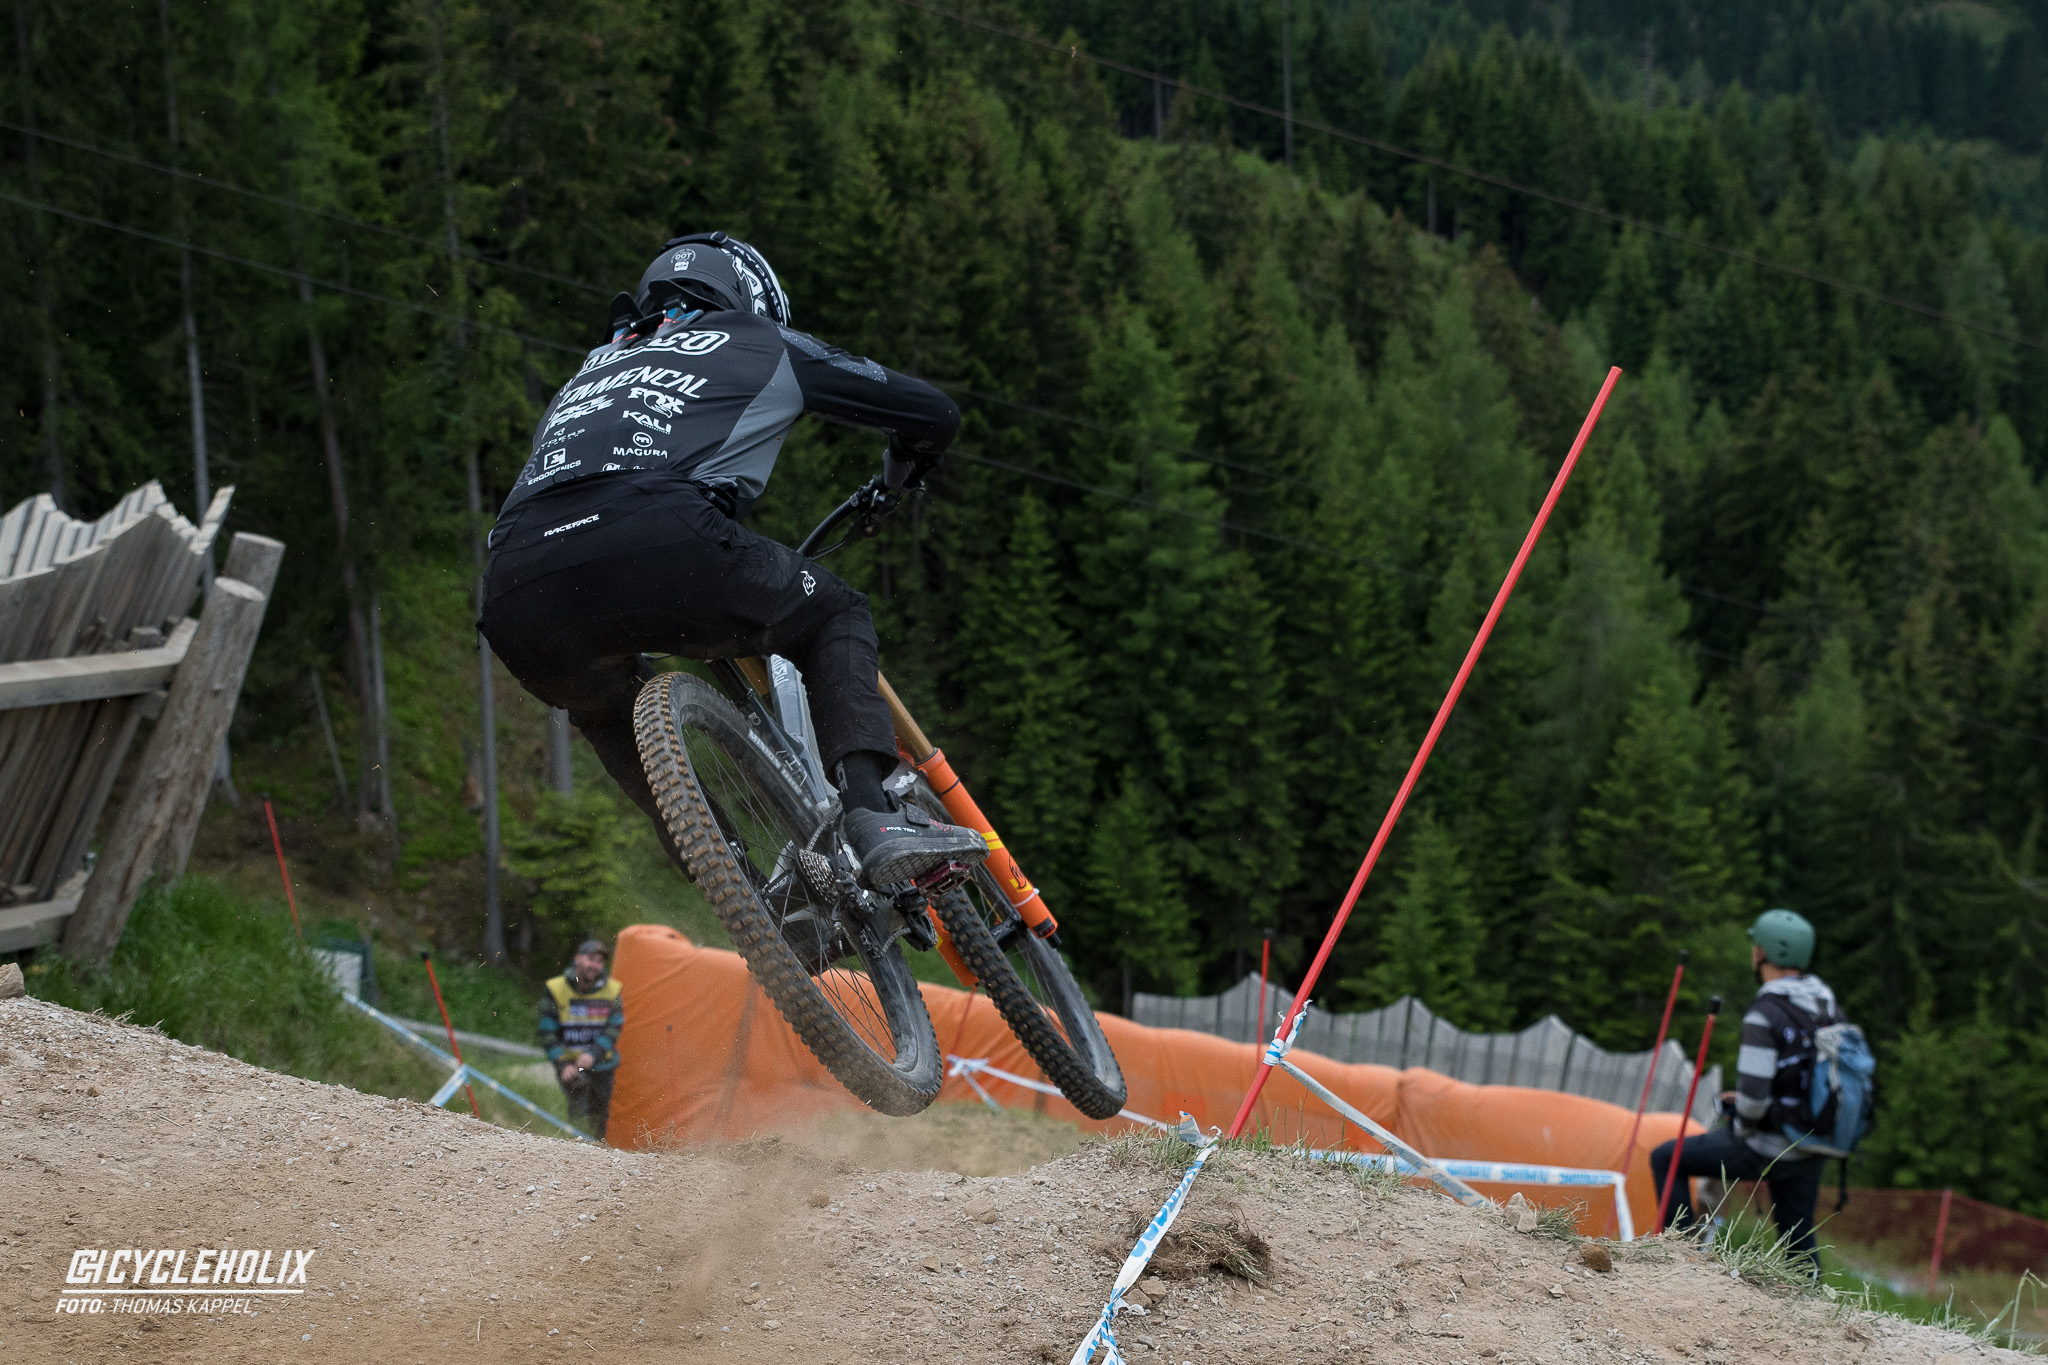 2019 Downhill Worldcup Leogang Finale Action QA 3 Cycleholix